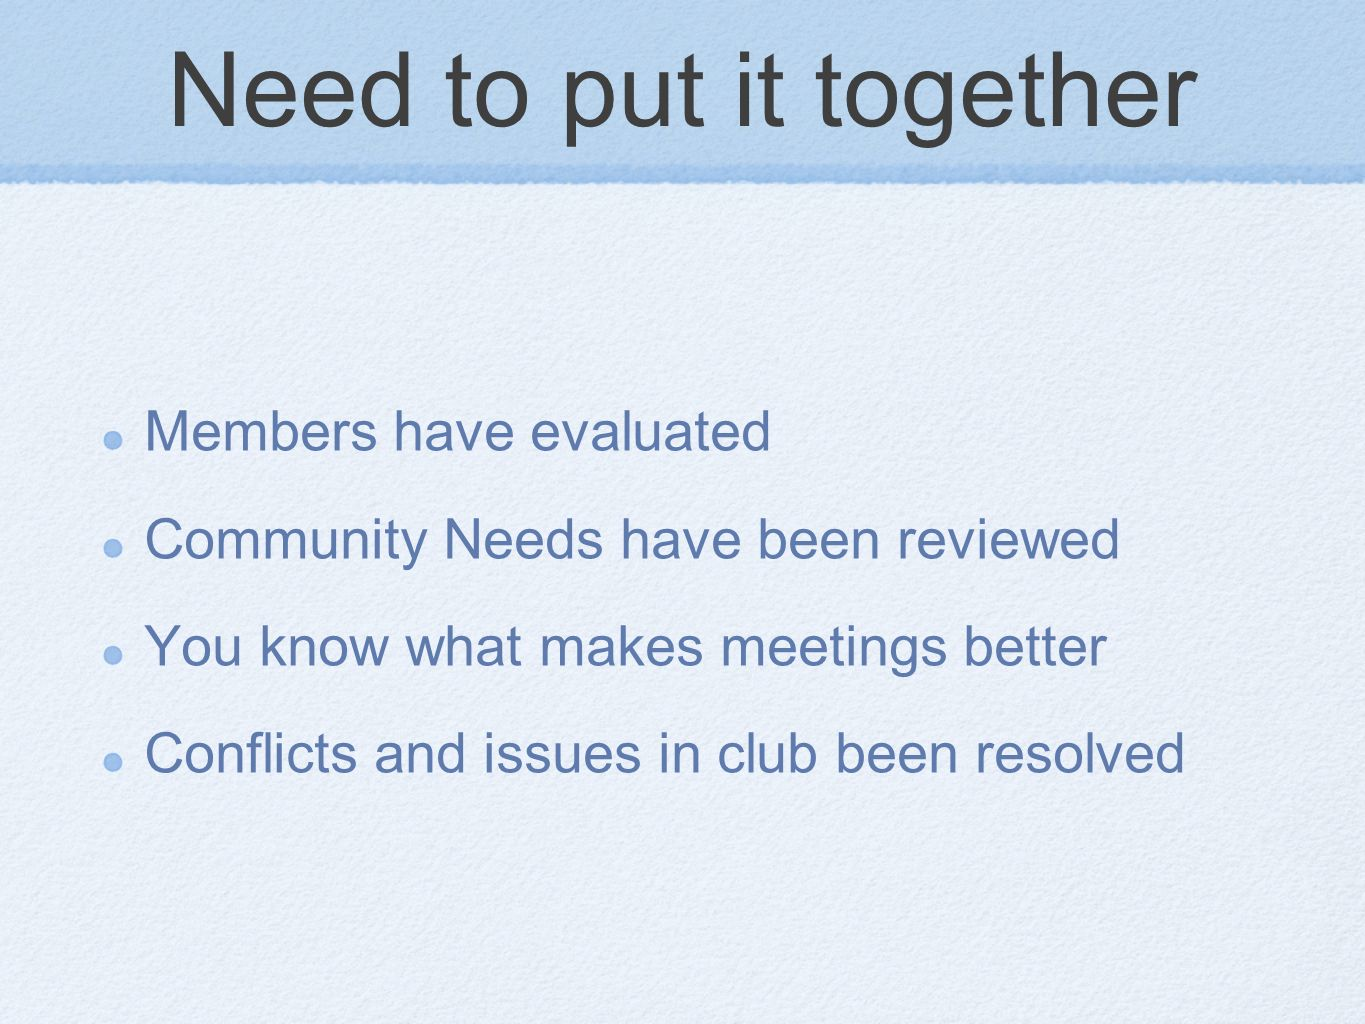 Need to put it together Members have evaluated Community Needs have been reviewed You know what makes meetings better Conflicts and issues in club been resolved